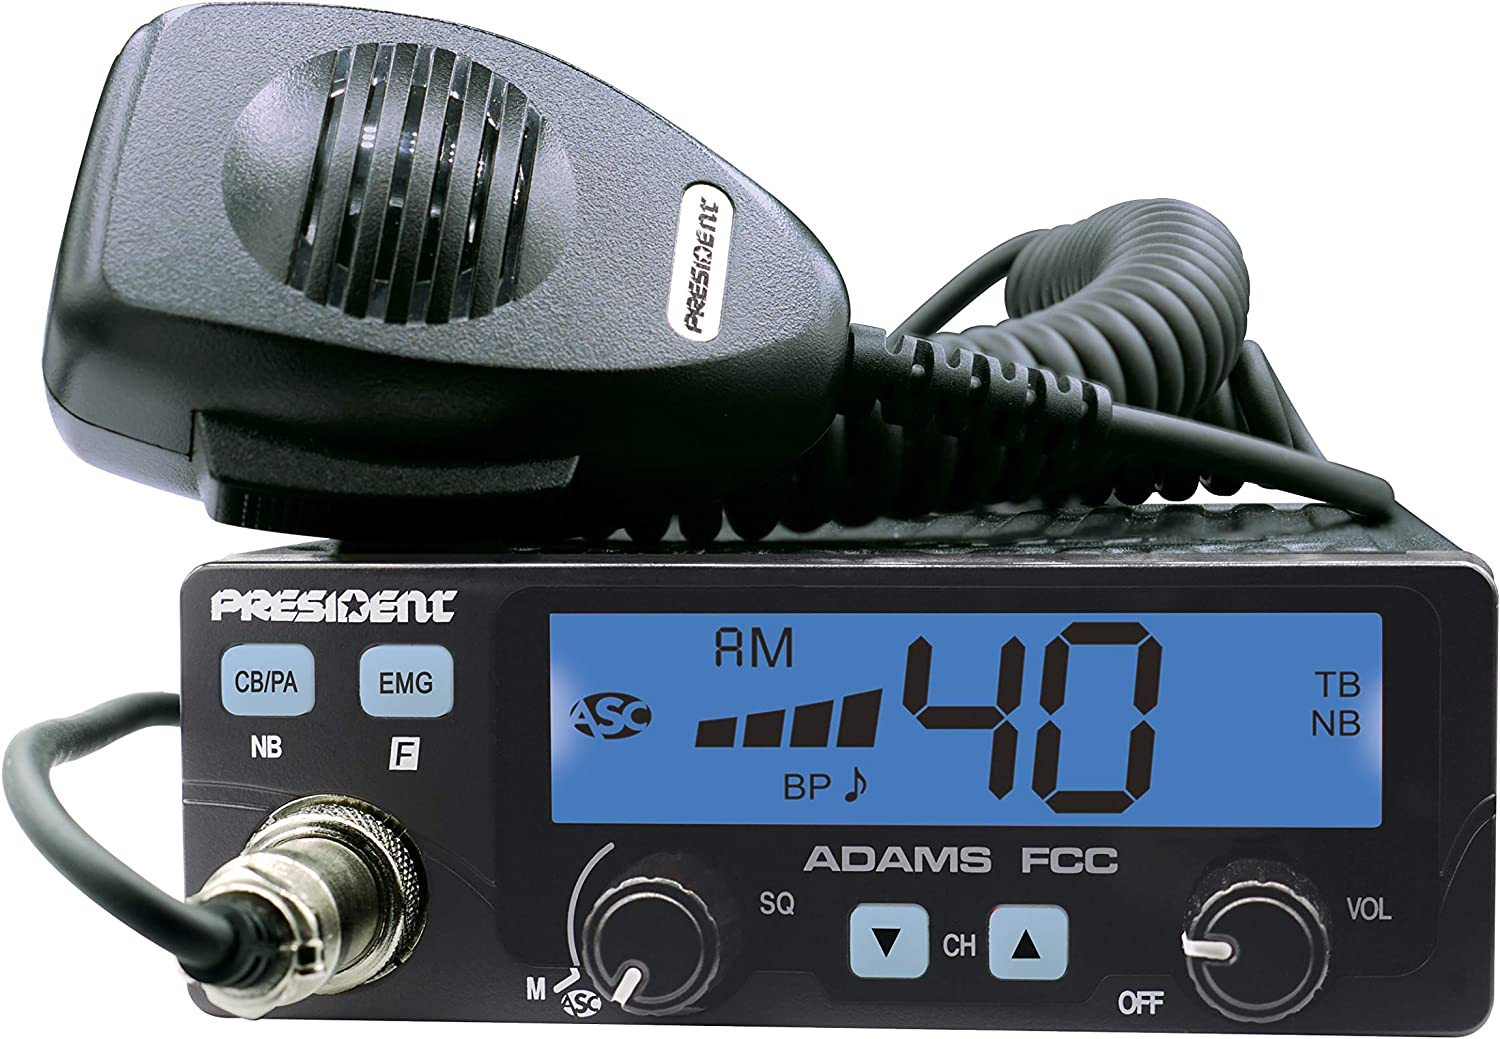 Large LCD with 7 Colors Programmable EMG Channel Shortcuts Electret or Dynamic Mic President Adams FCC CB Radio Roger Beep and Key Beep Talkback ASC and Manual Squelch